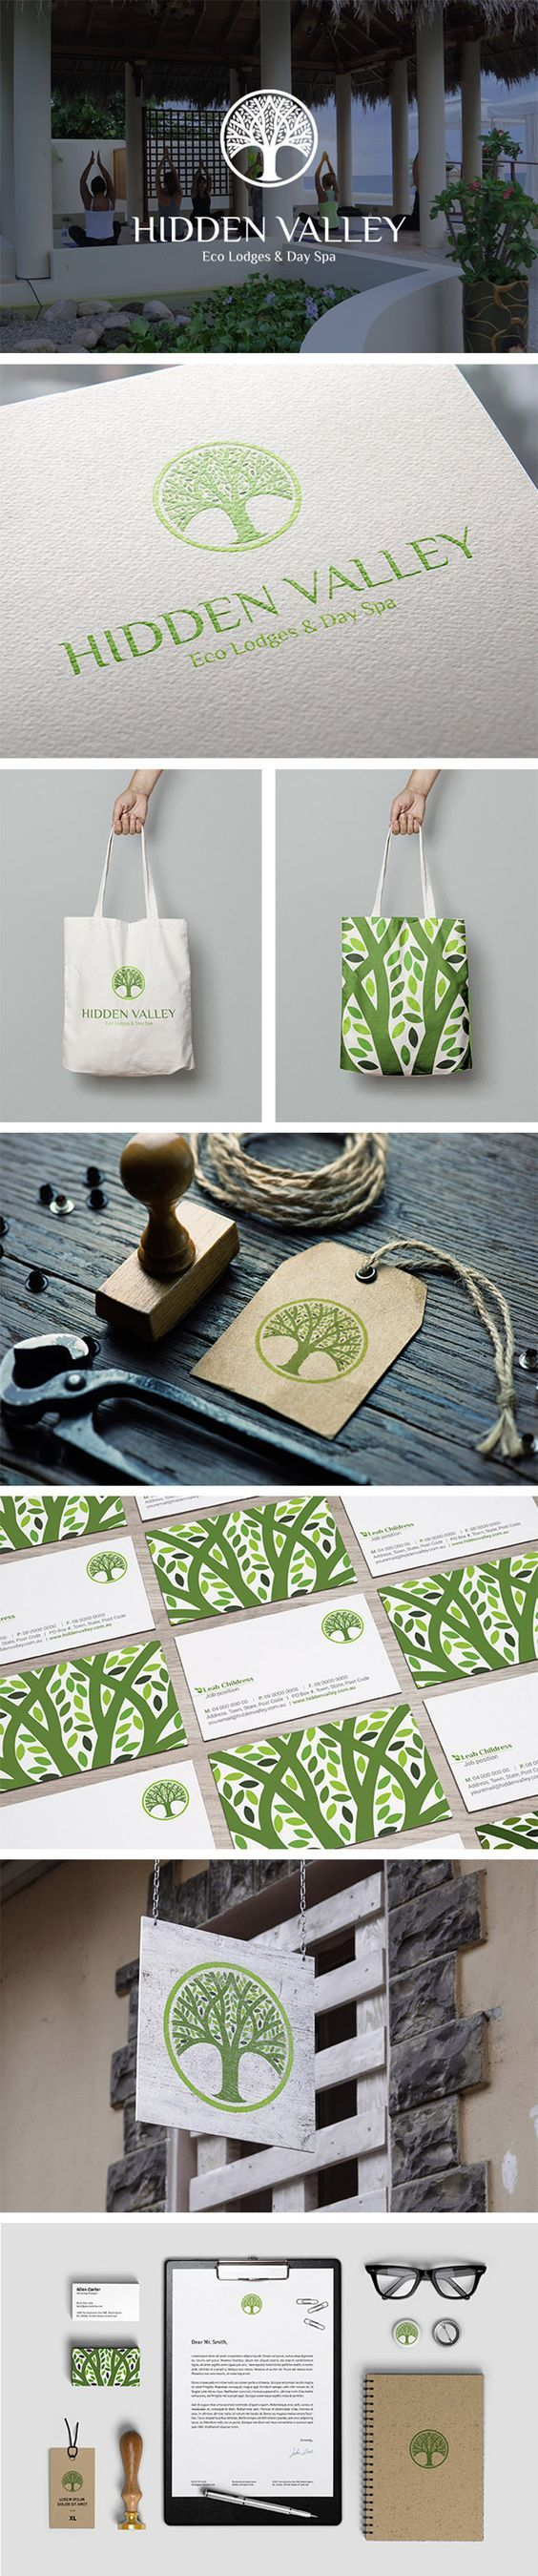 Logo Design, Brand Identity Spa, Tree Eco Retreat | modern, green, zen, circle, yoga, leaf | Hidden Valley Eco Lodge, Perth: